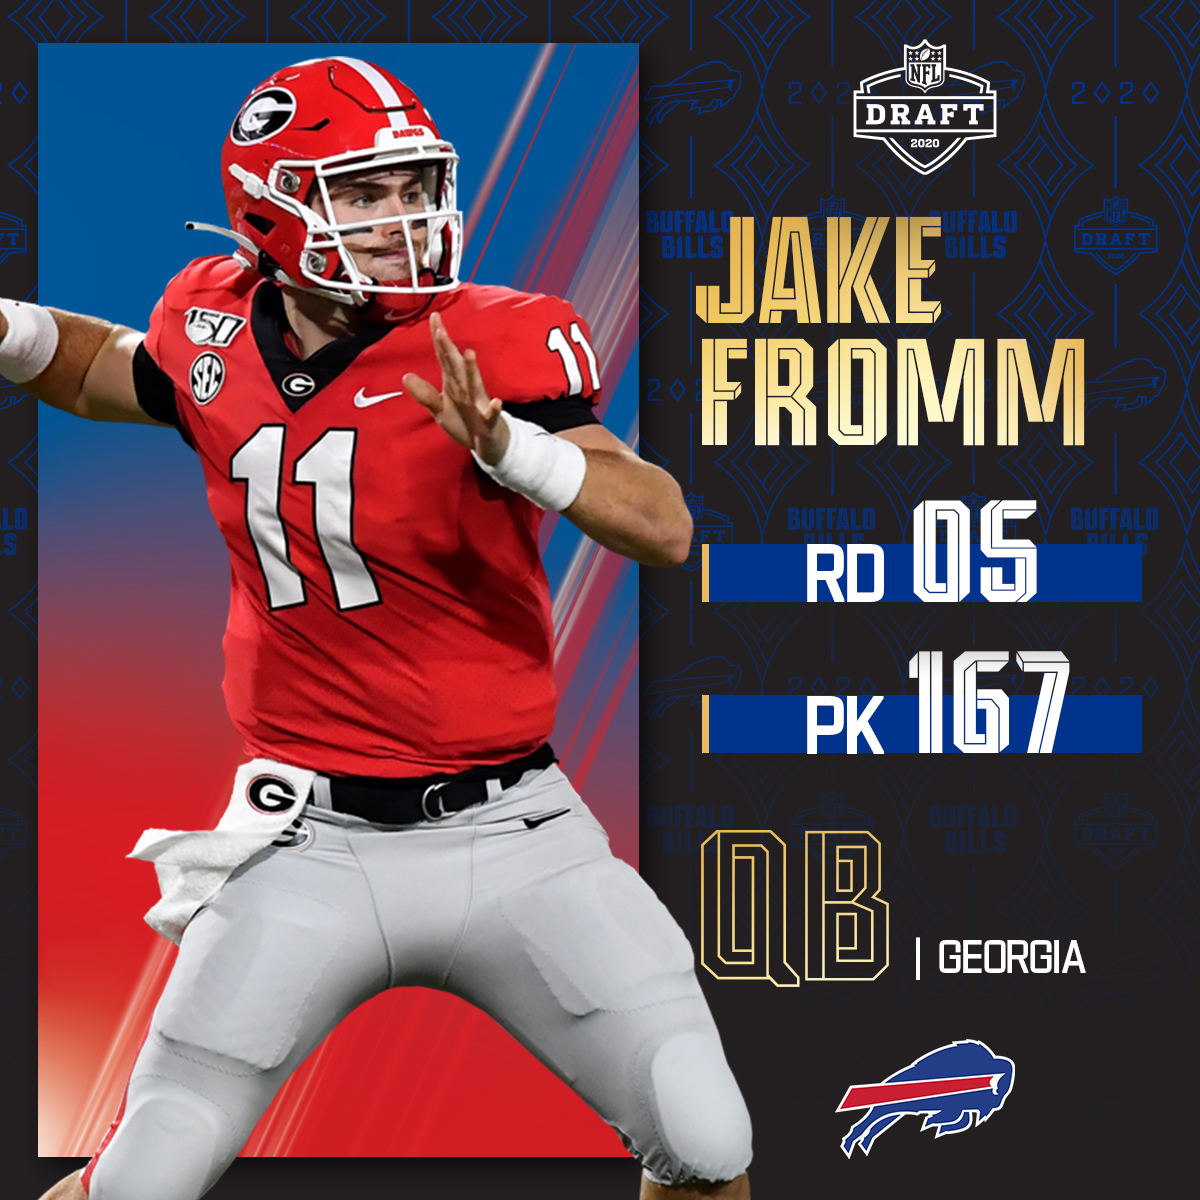 With the No. 167 overall pick, the @BuffaloBills select @GeorgiaFootball QB Jake Fromm! 📺: 2020 #NFLDraft on NFLN/ESPN/ABC 📱: bit.ly/2zrlHEG